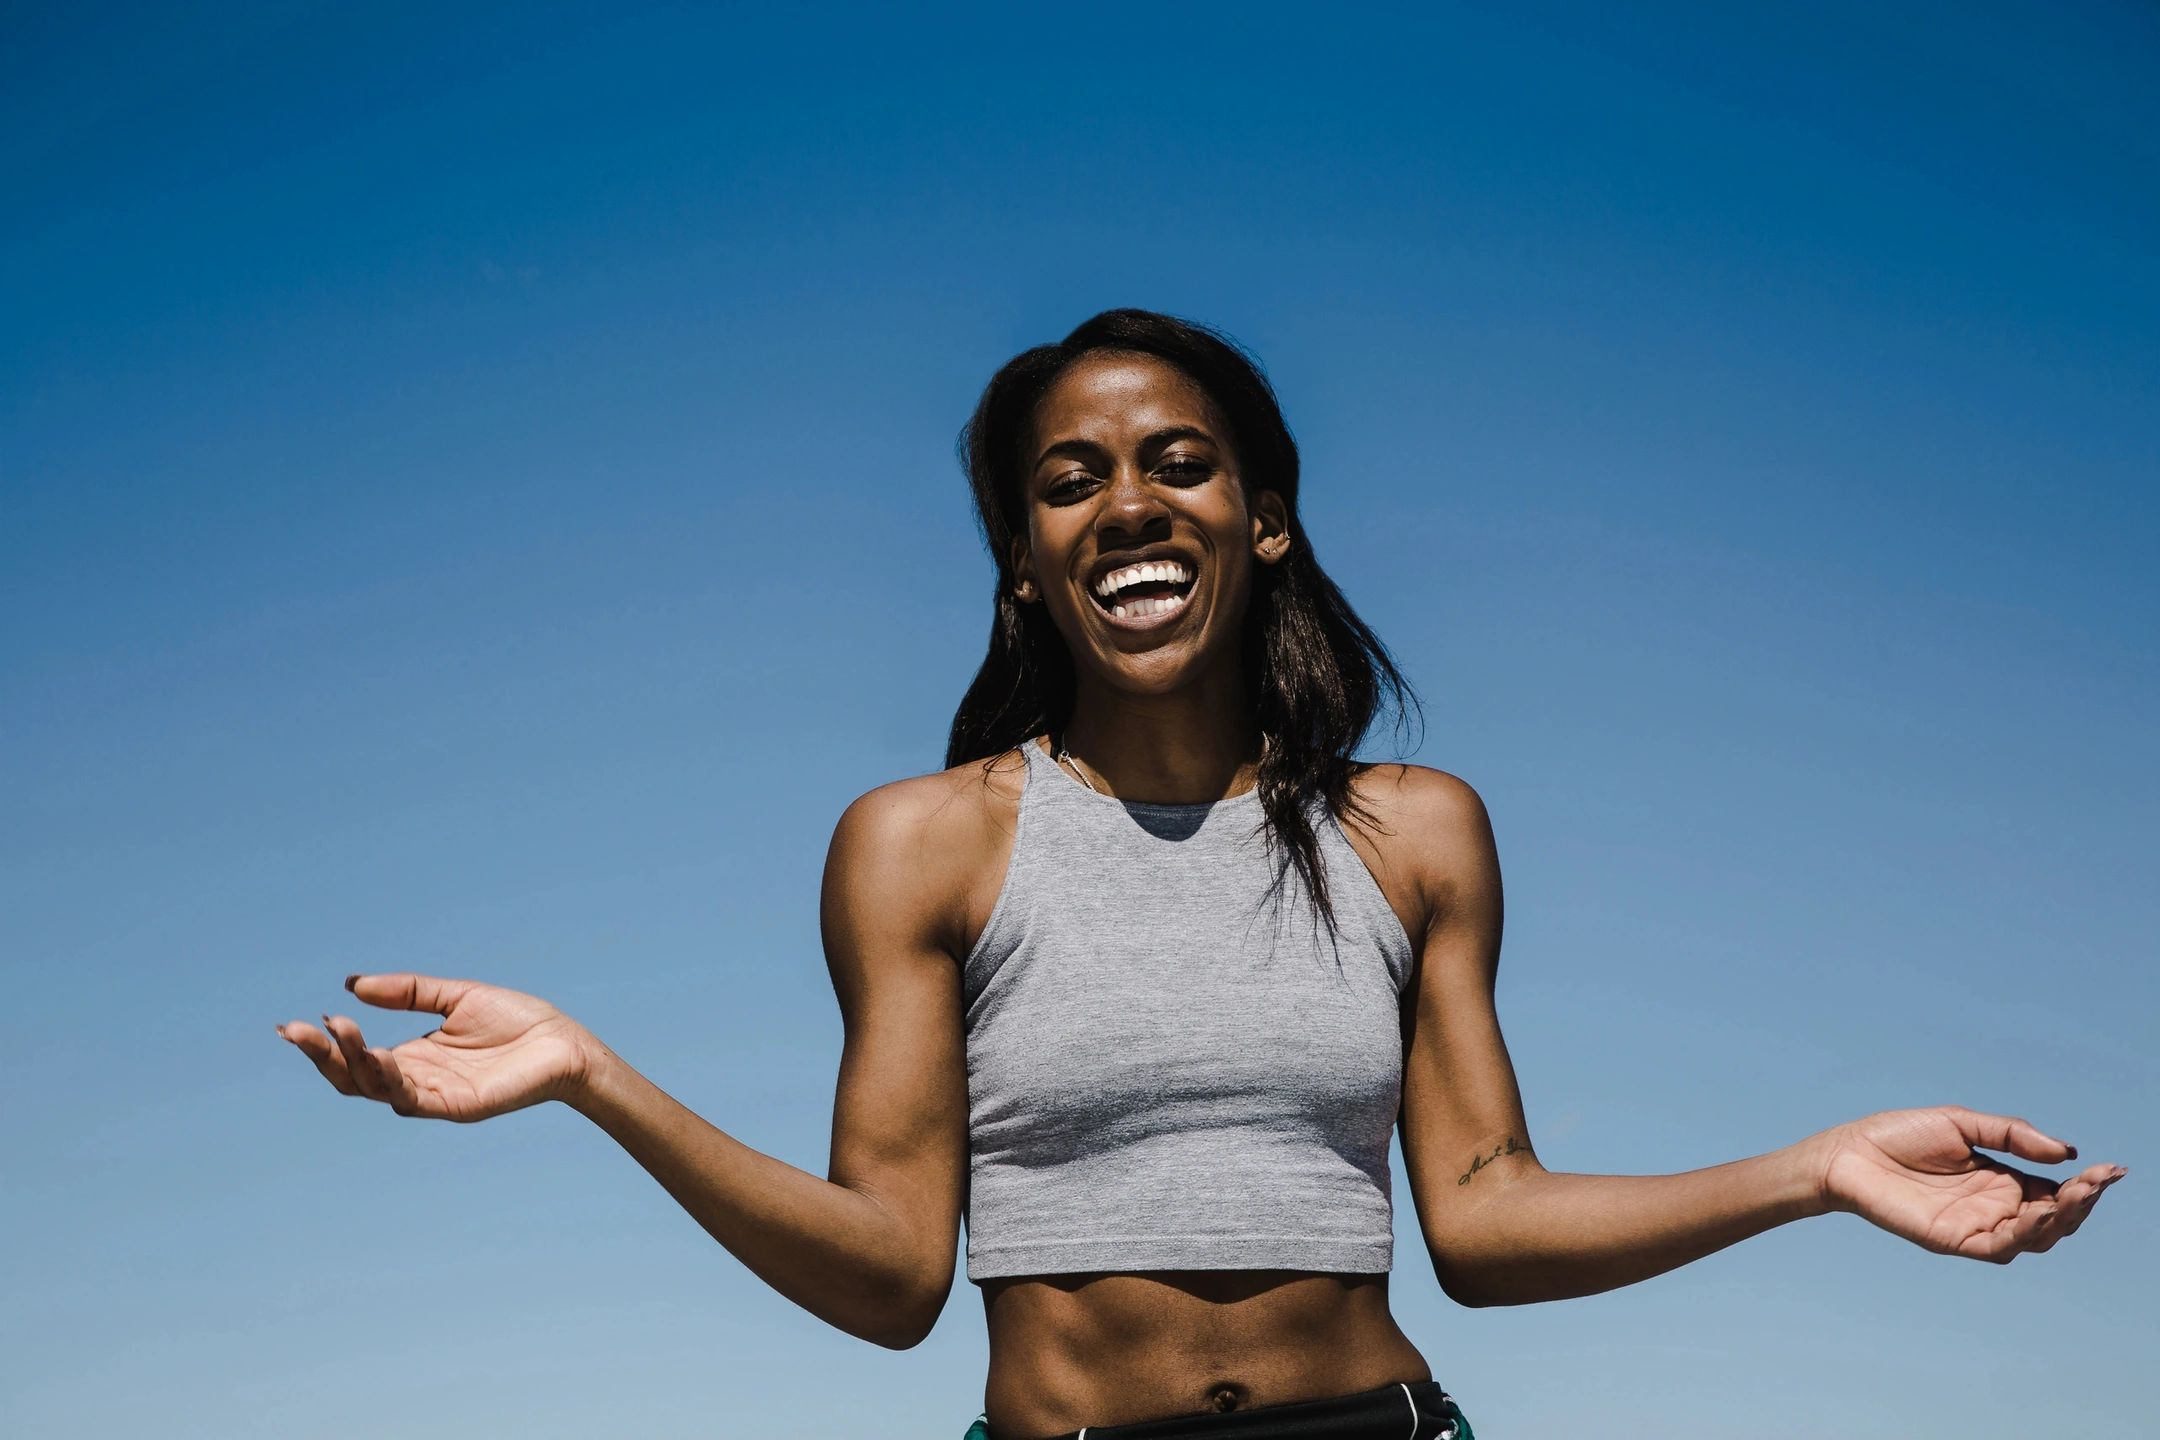 Black woman athlete smiling with a blue sky